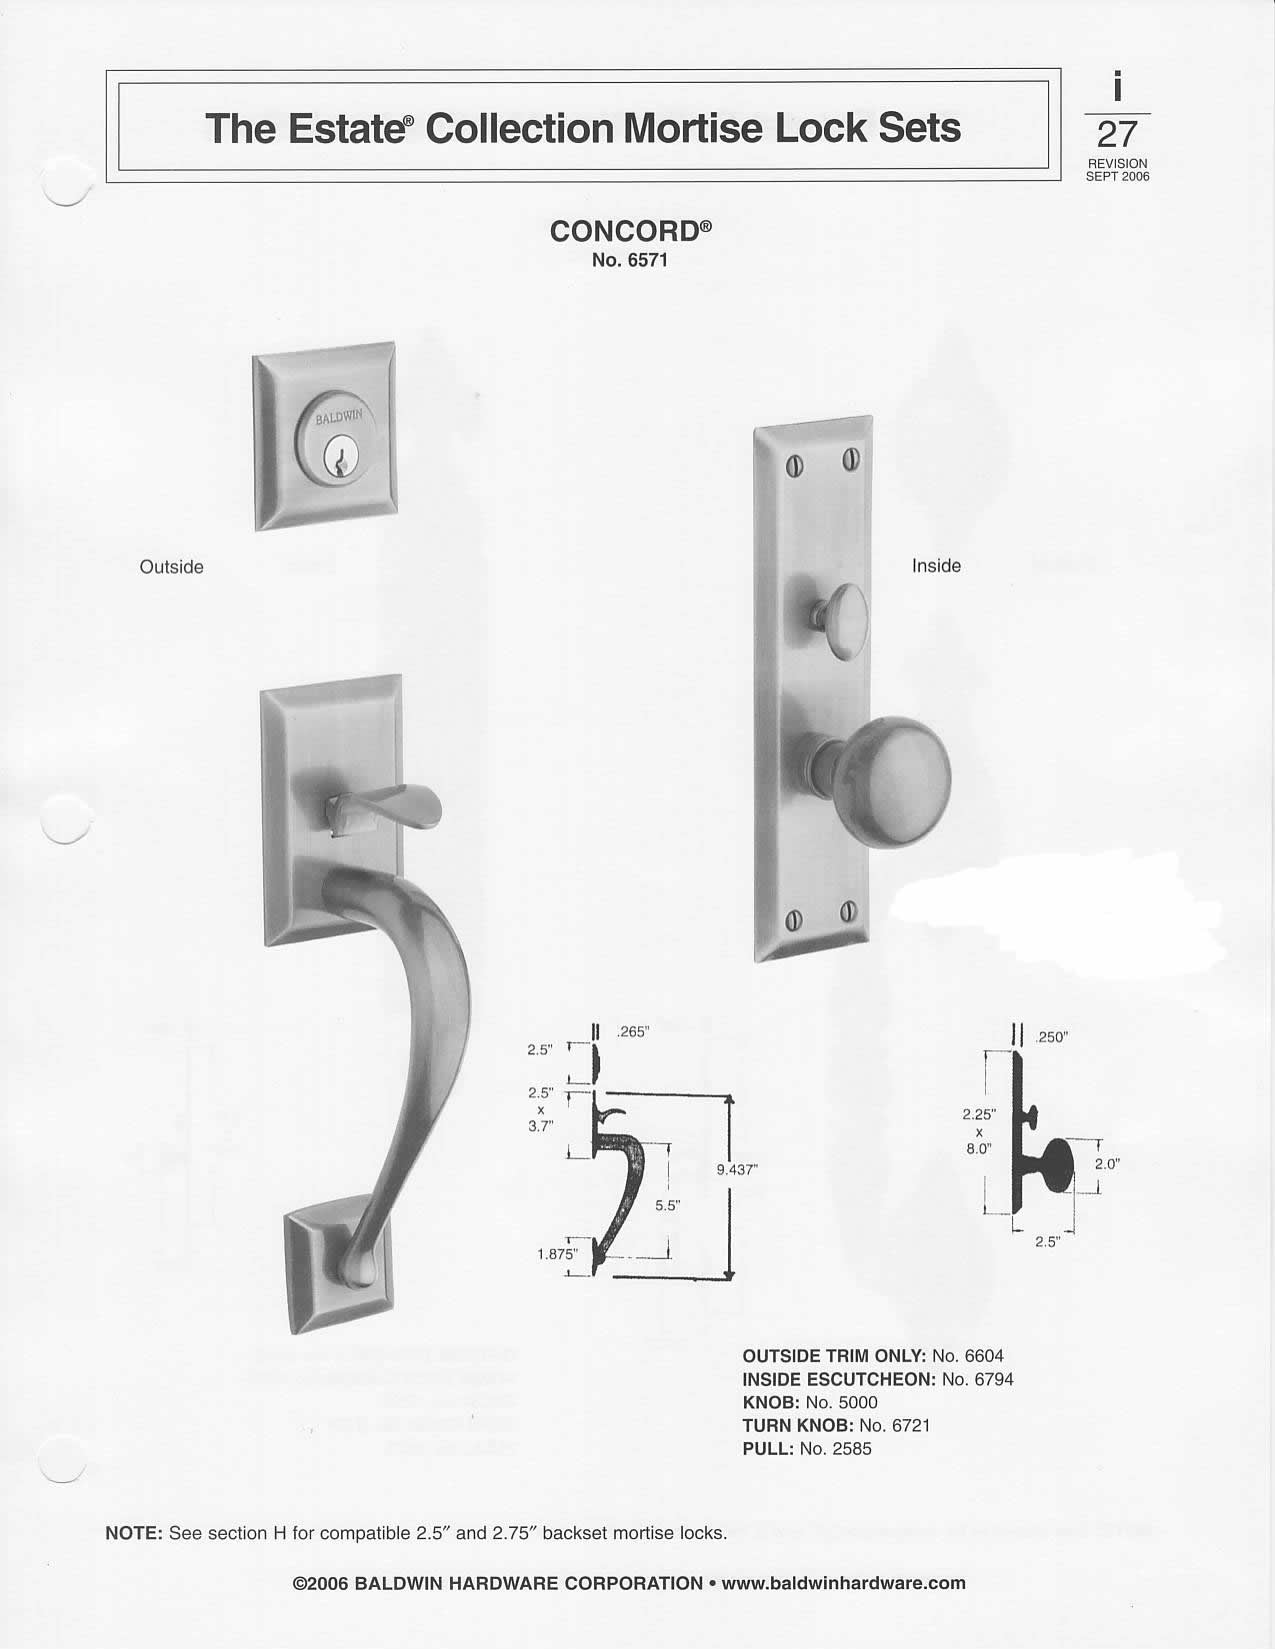 mortise lock parts diagram electrical wiring in house baldwin colonial style solid brass handle set concord